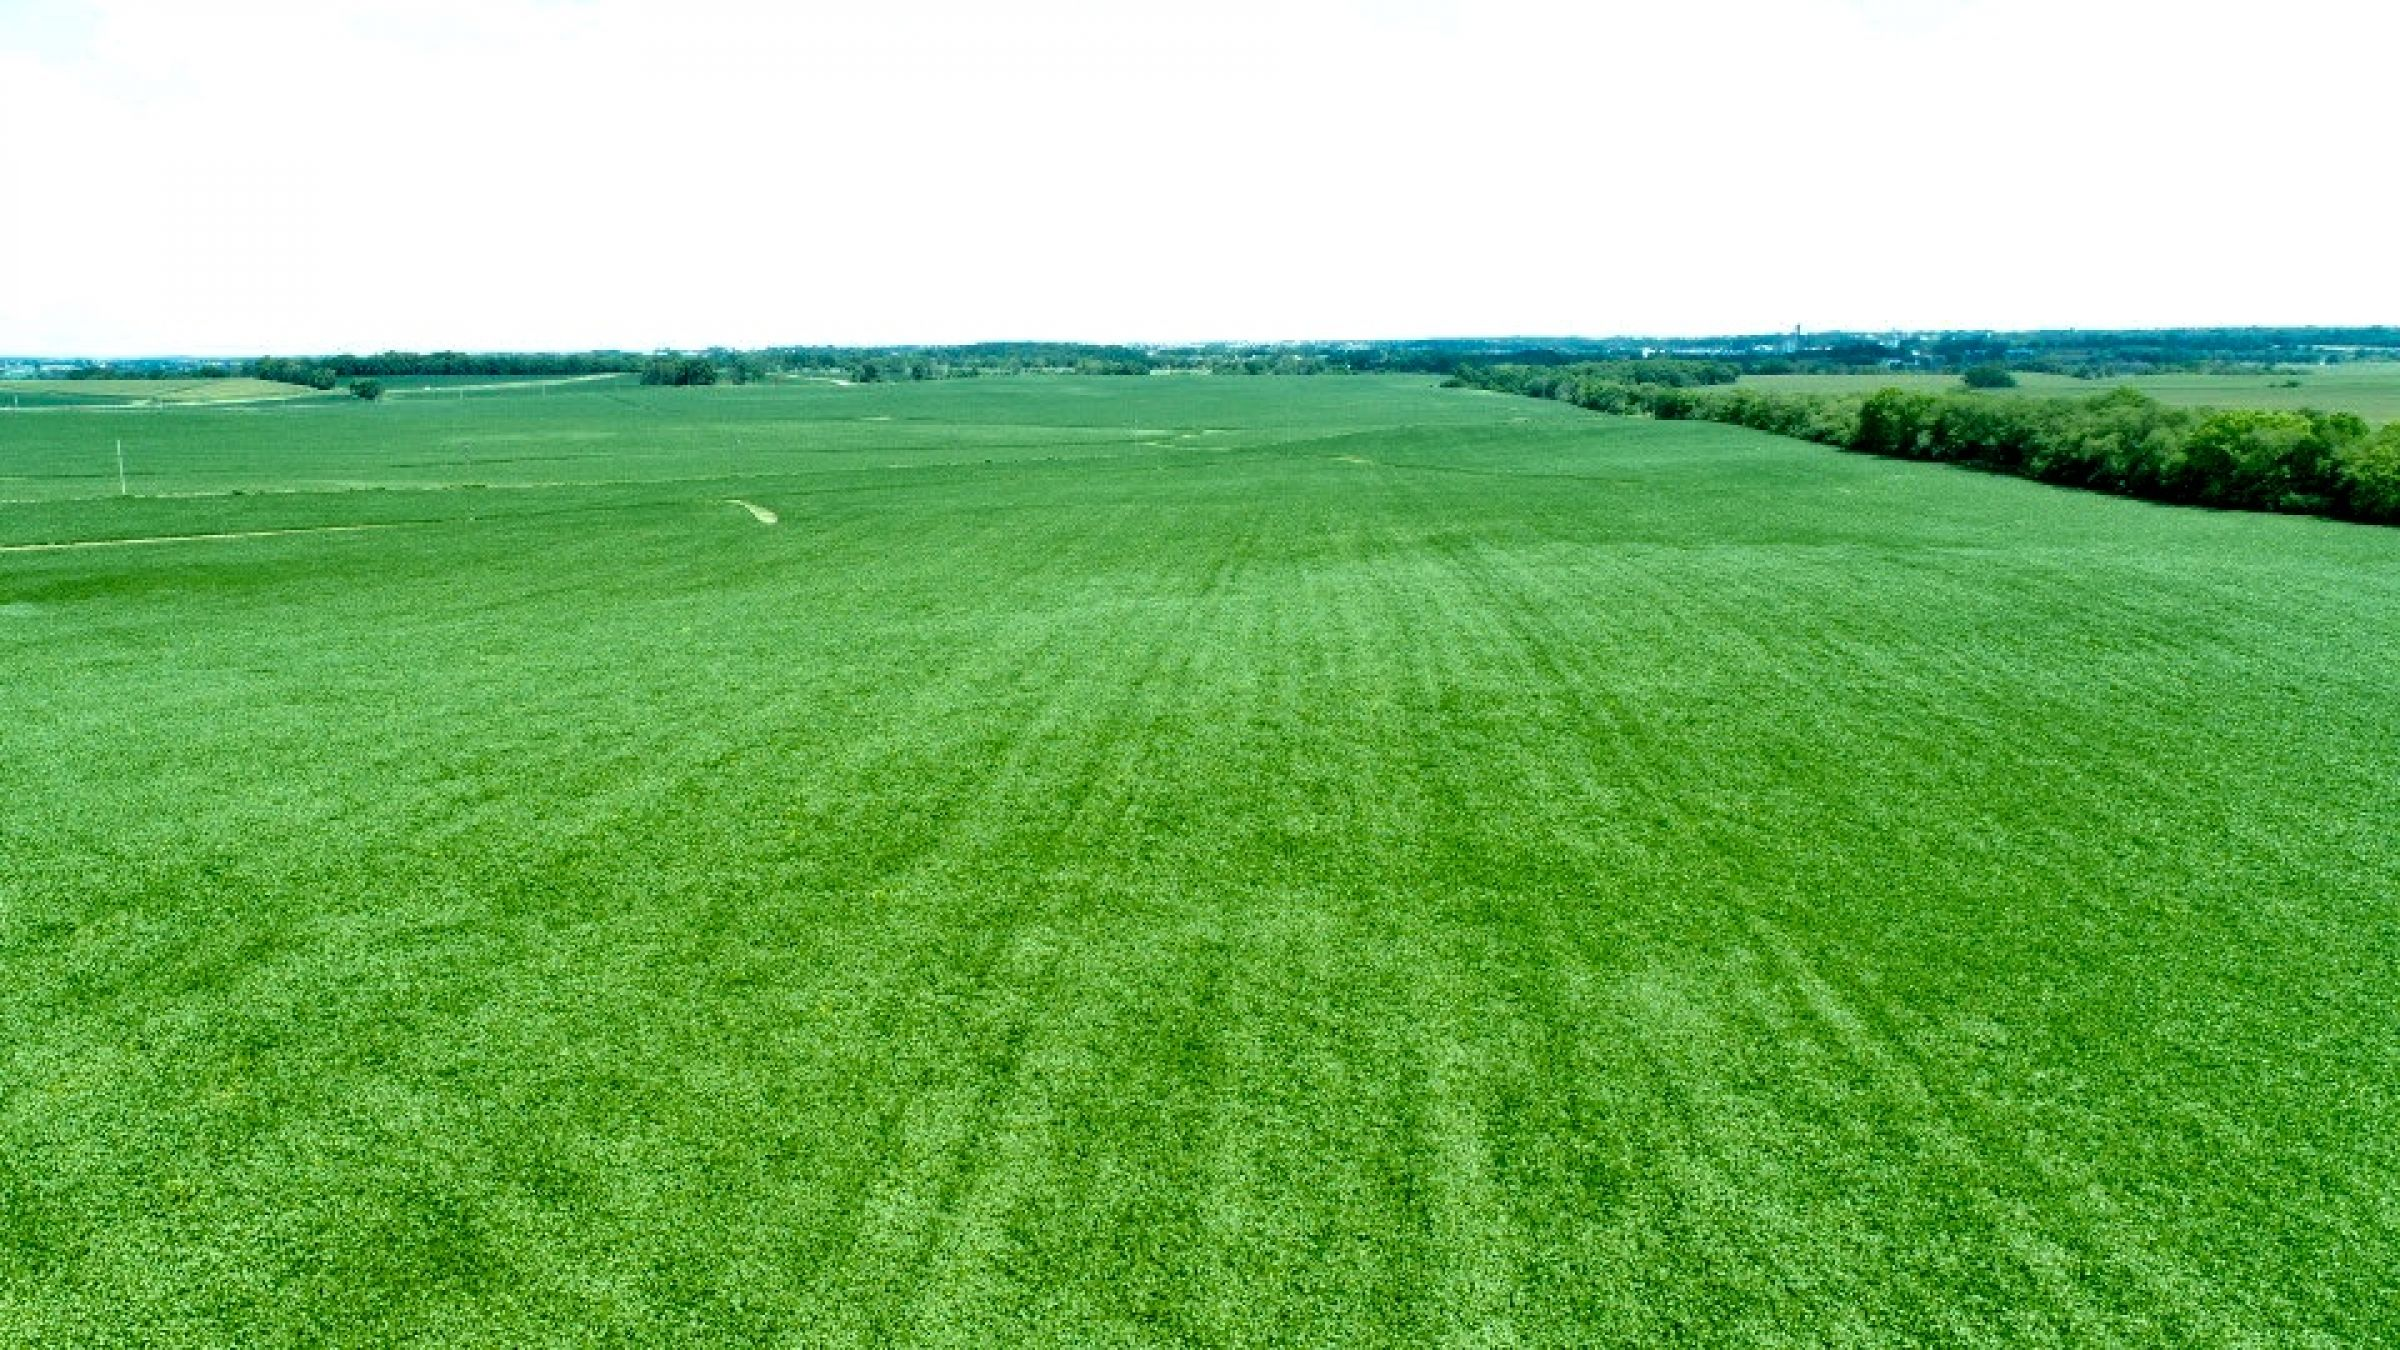 land-green-county-wisconsin-80-acres-listing-number-15692-1-2021-08-19-205611.jpg